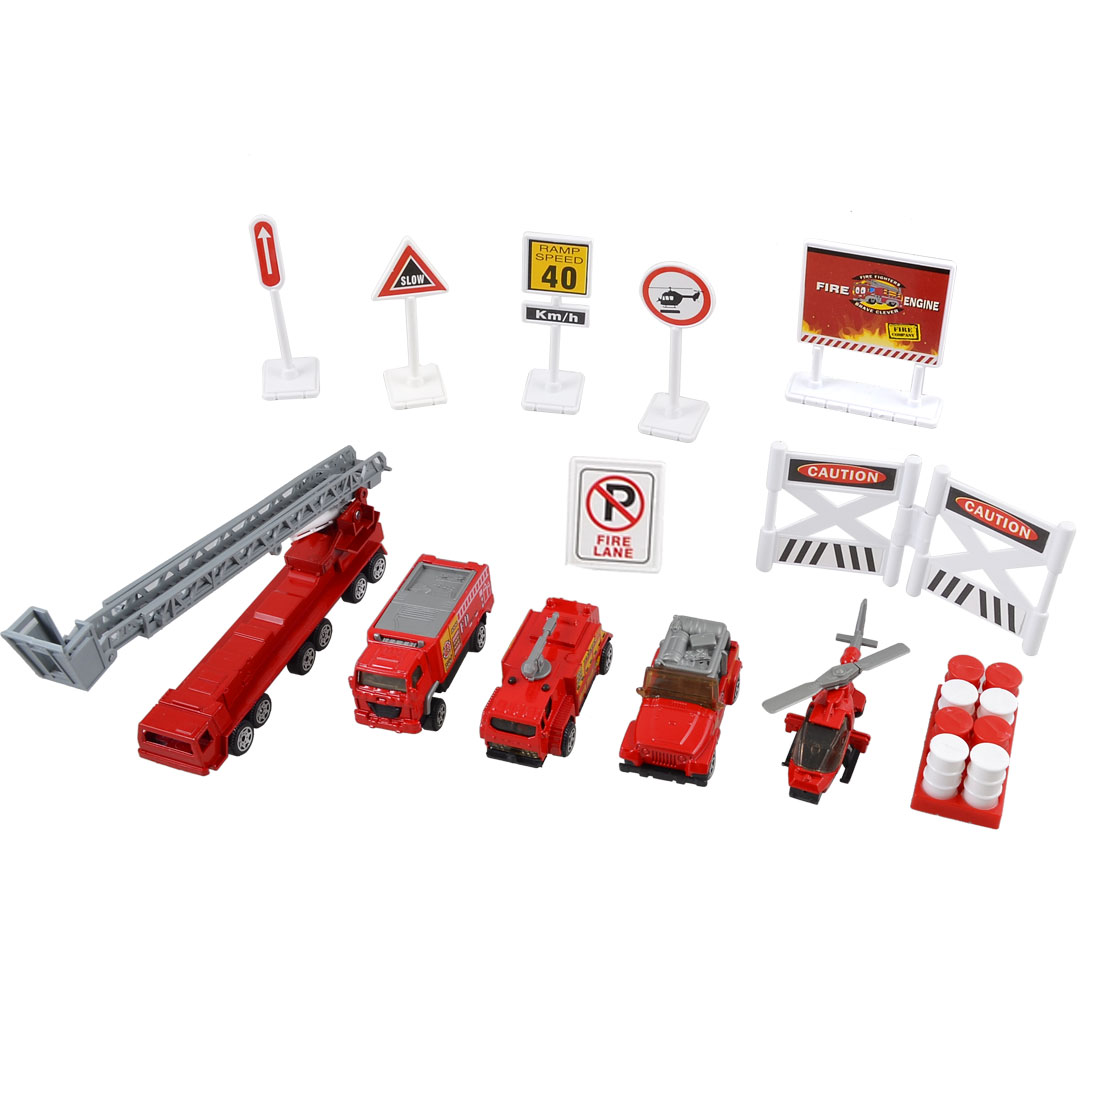 Children Plastic Fuel Barrel Roadblocks Helicopter Fire Engine Truck Toy Set 13 in 1